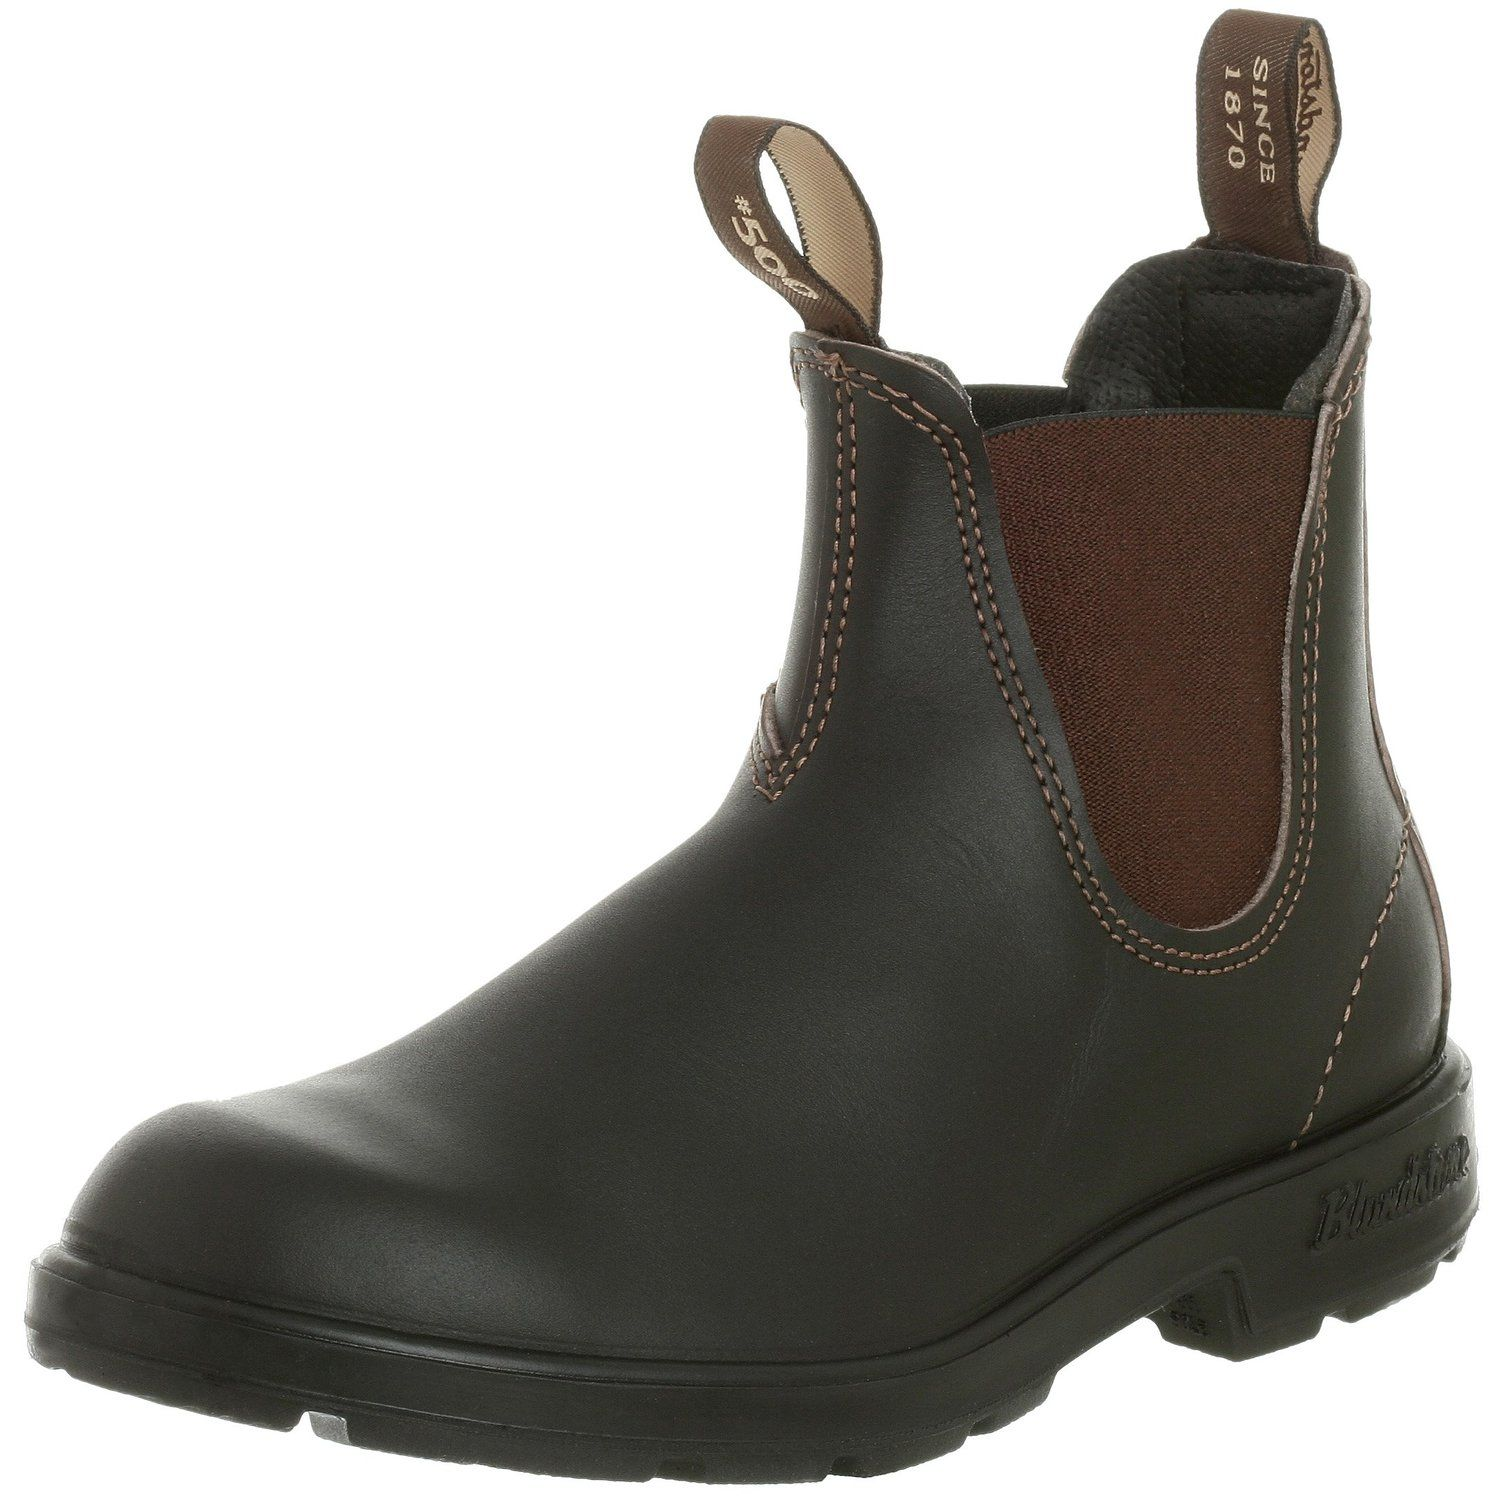 Amazon | Blundstone Women's Blundstone 500 Stout Brown Boot | Ankle &  Bootie